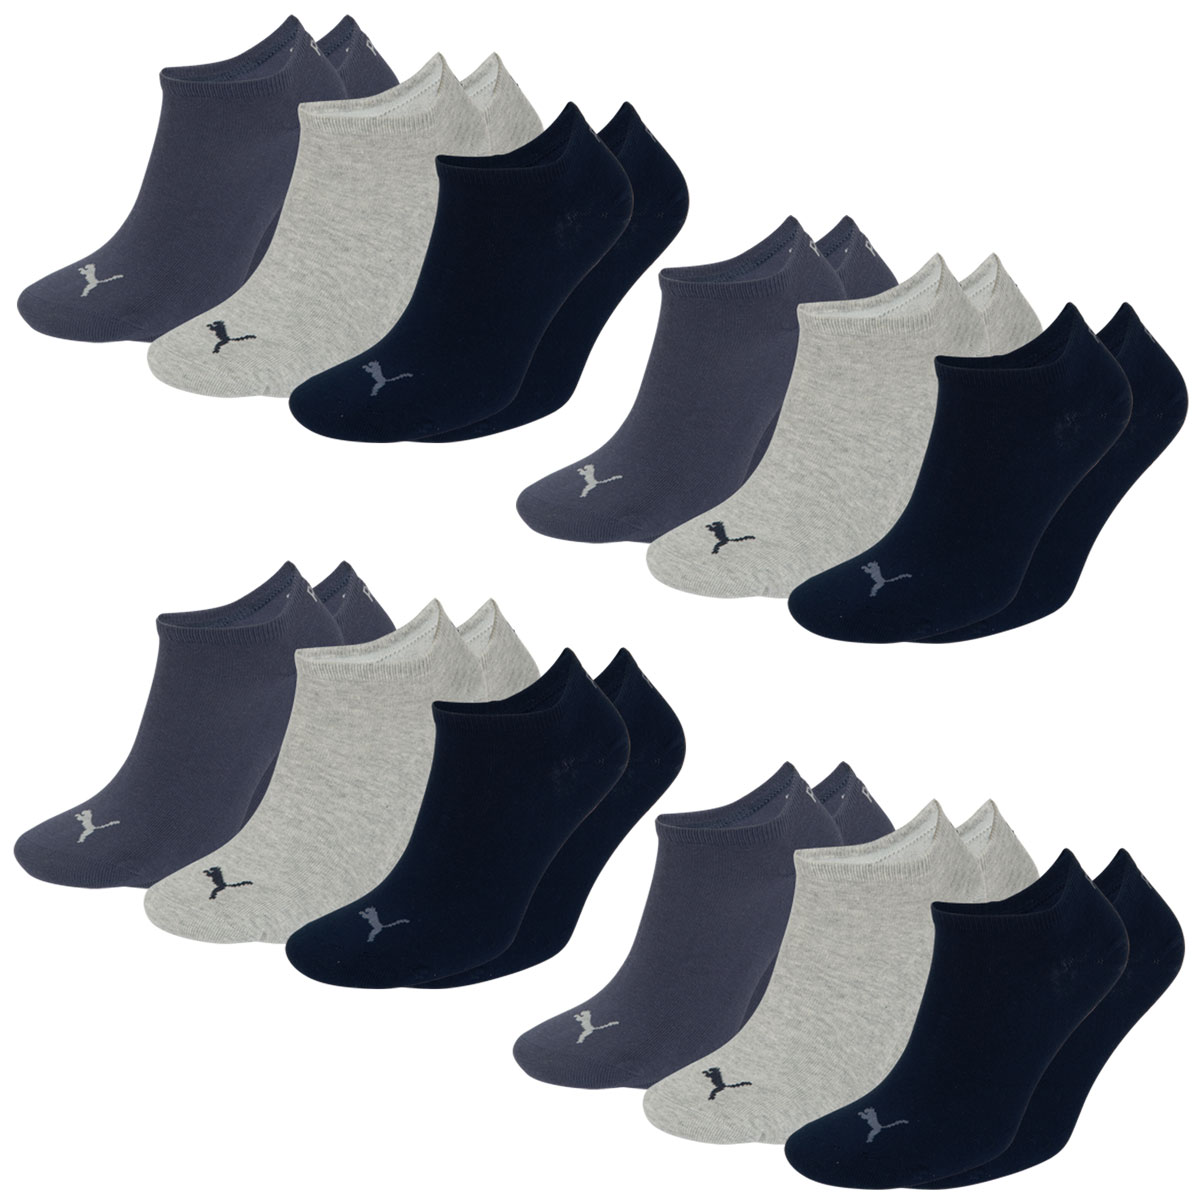 12 Paar Puma Füsslinge, navy/grey/nightshadow blue, Farbe 4